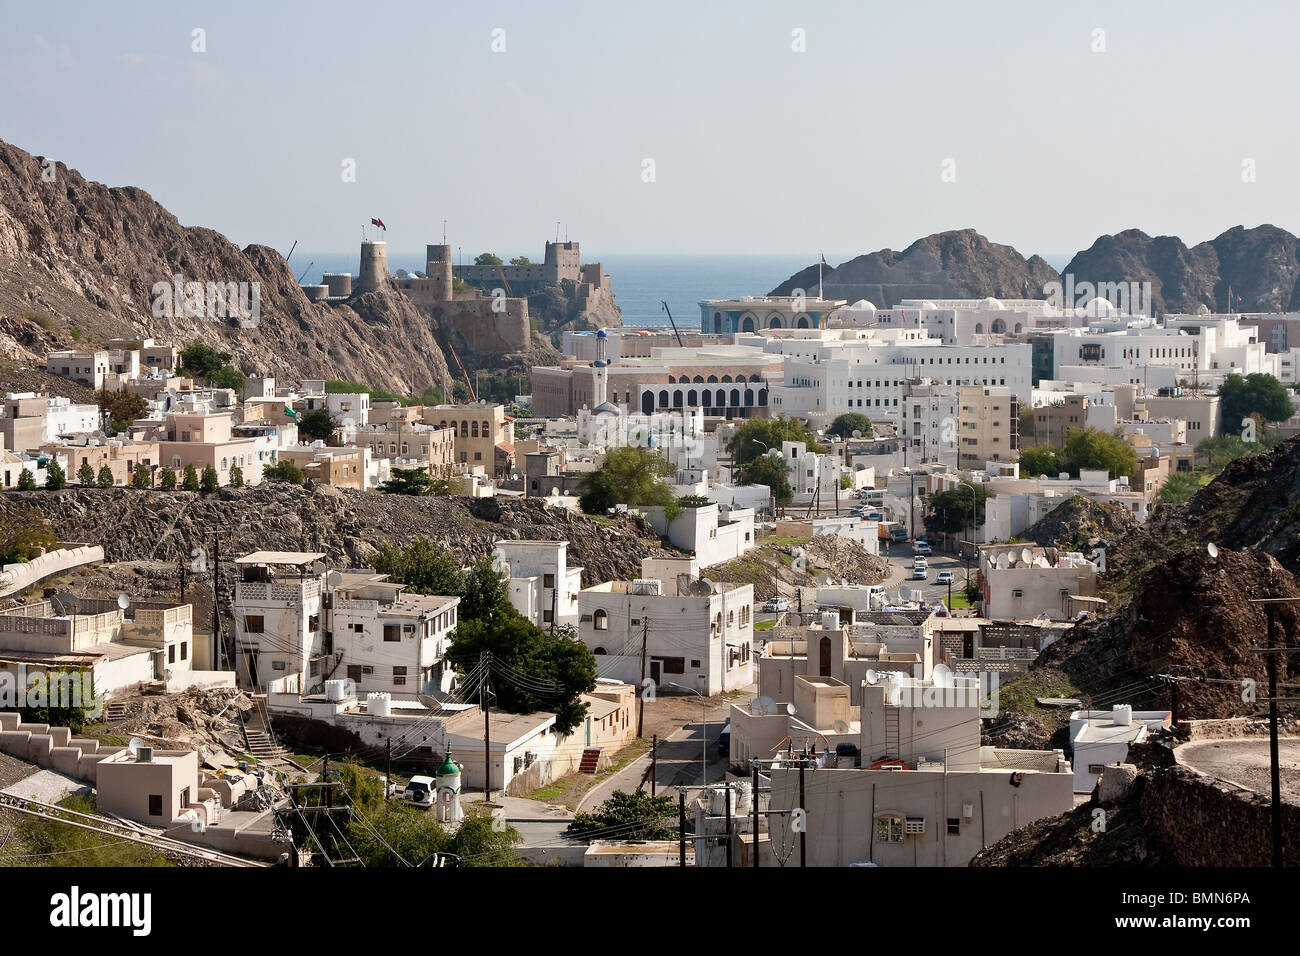 muscat old town stock photo royalty free image 29969810 alamy. Black Bedroom Furniture Sets. Home Design Ideas